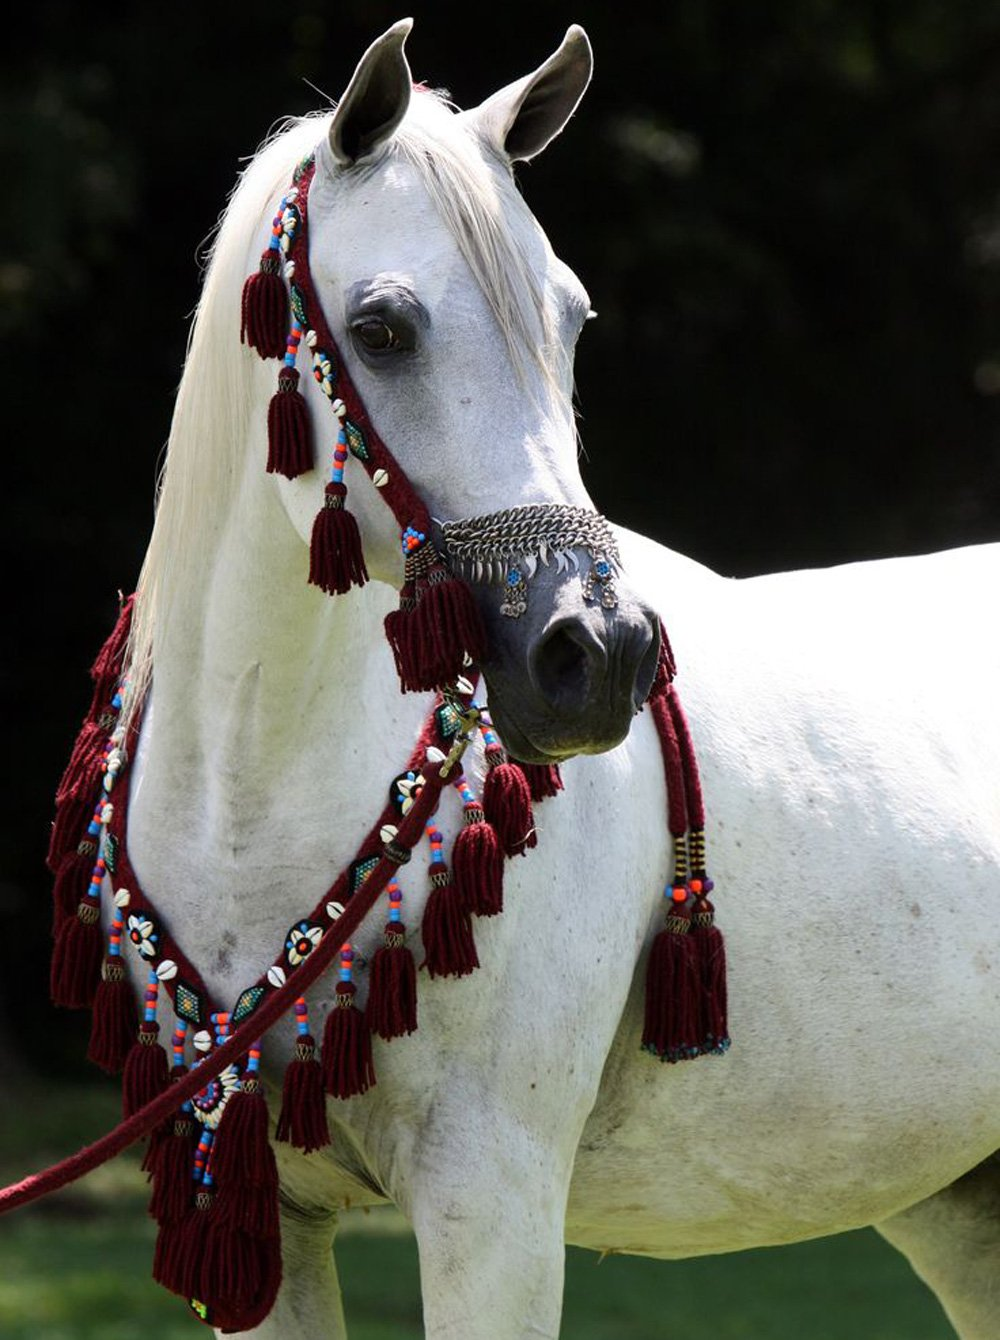 Saudi Arabia S Most Beautiful Horses Ride In The Kingdom S Famed Souq Okaz Festival About Her